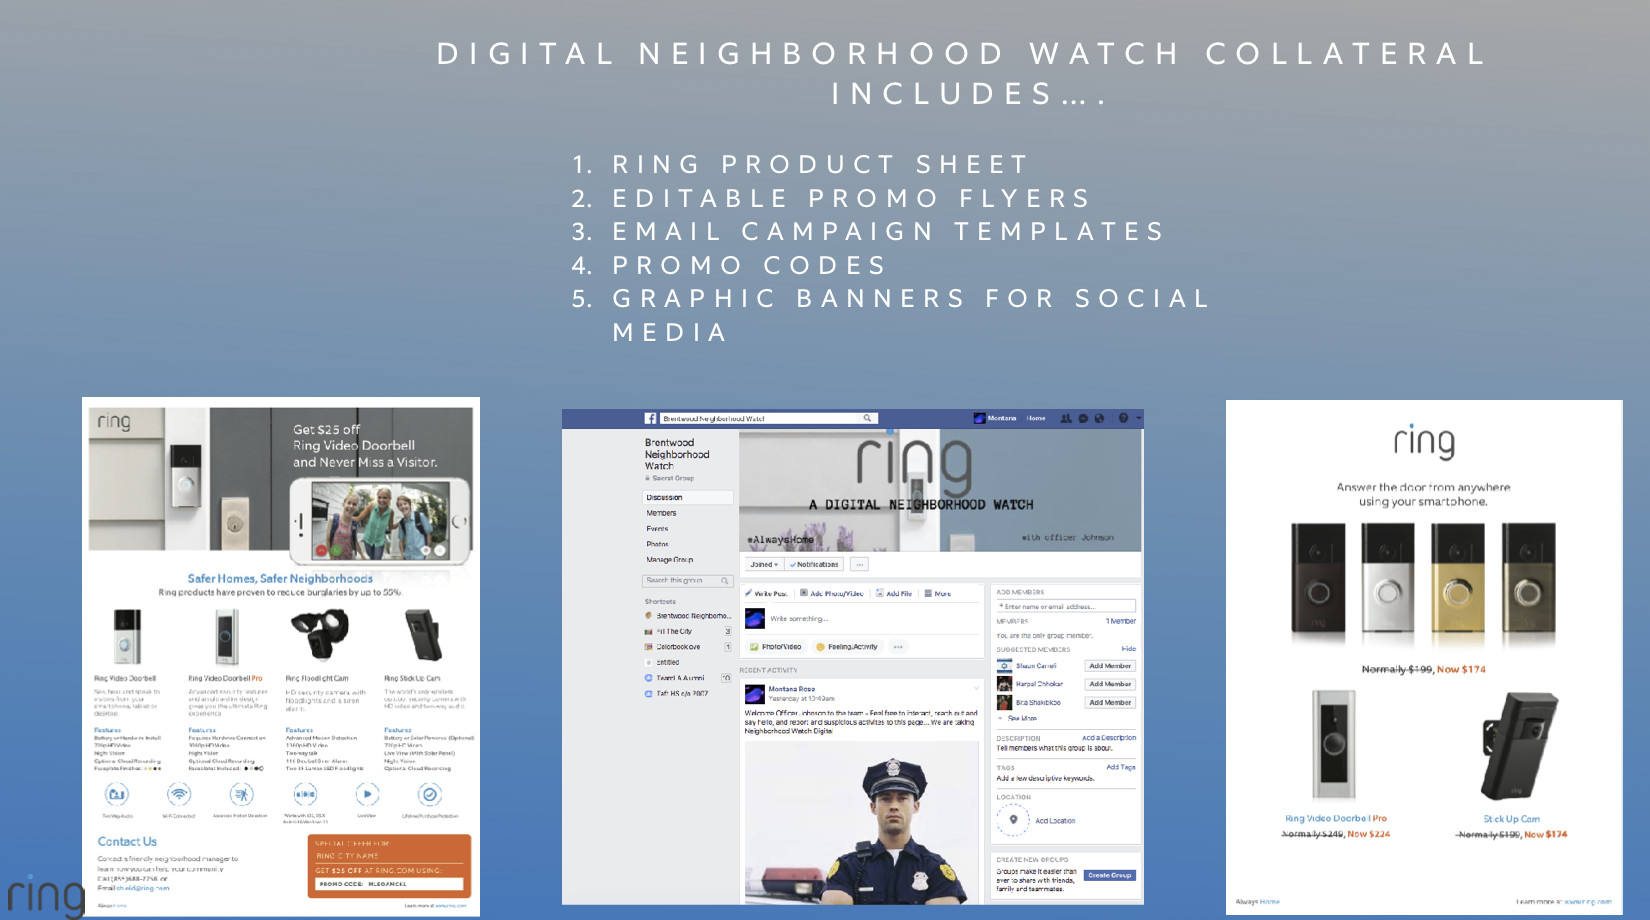 Image: Slide 12 of the Digital Neighborhood Watch document obtained by Motherboard.